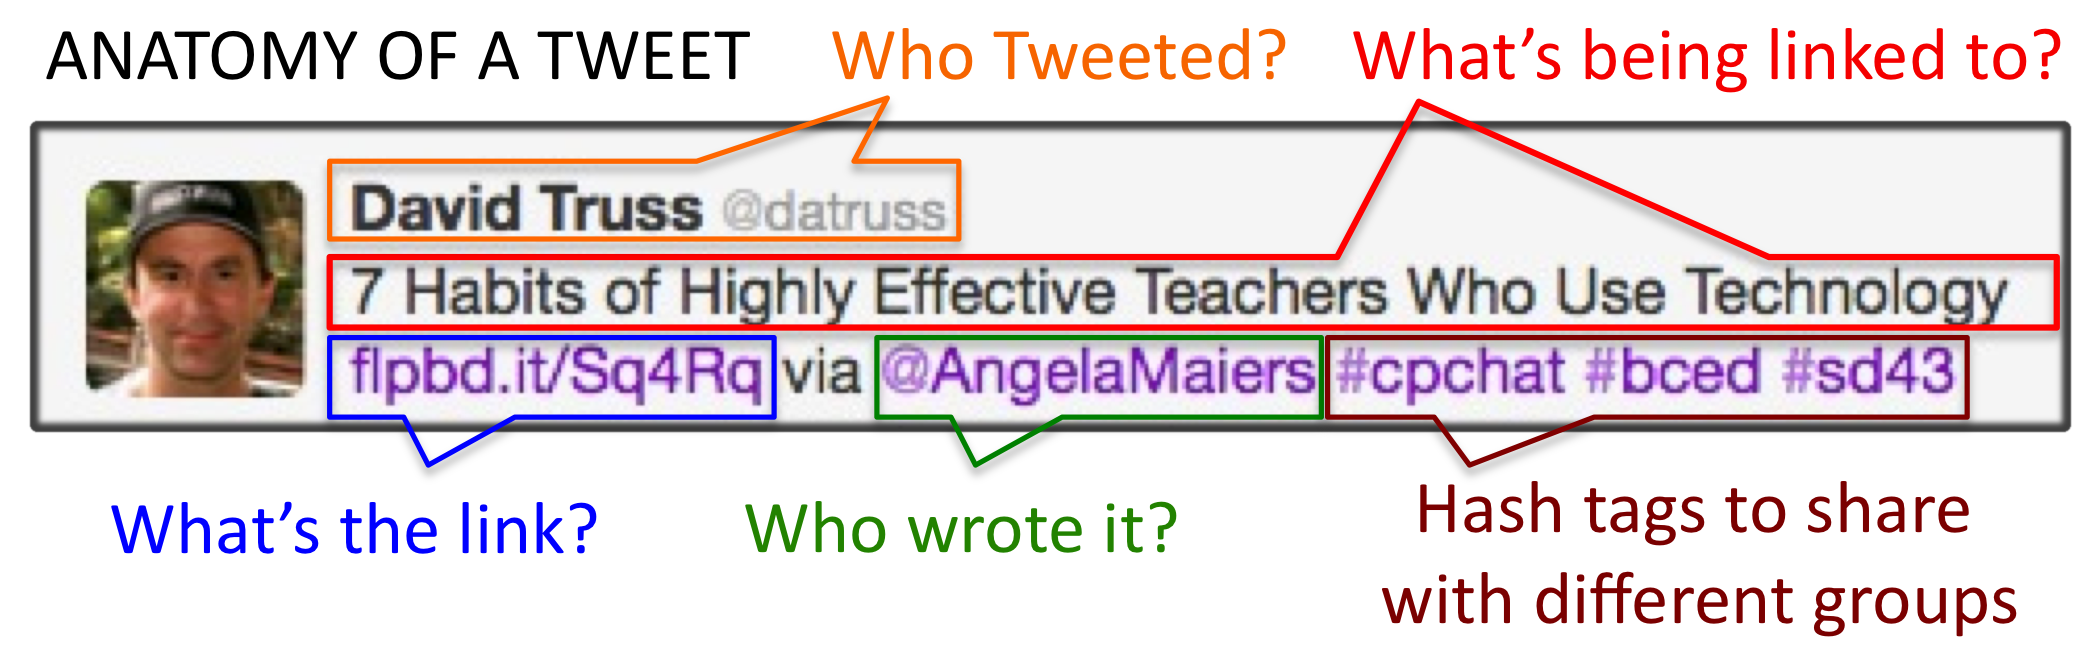 Twitter EDU - a great one-stop-all-you-need-to-know guide to Twitter via pairadimes.davidtruss.com